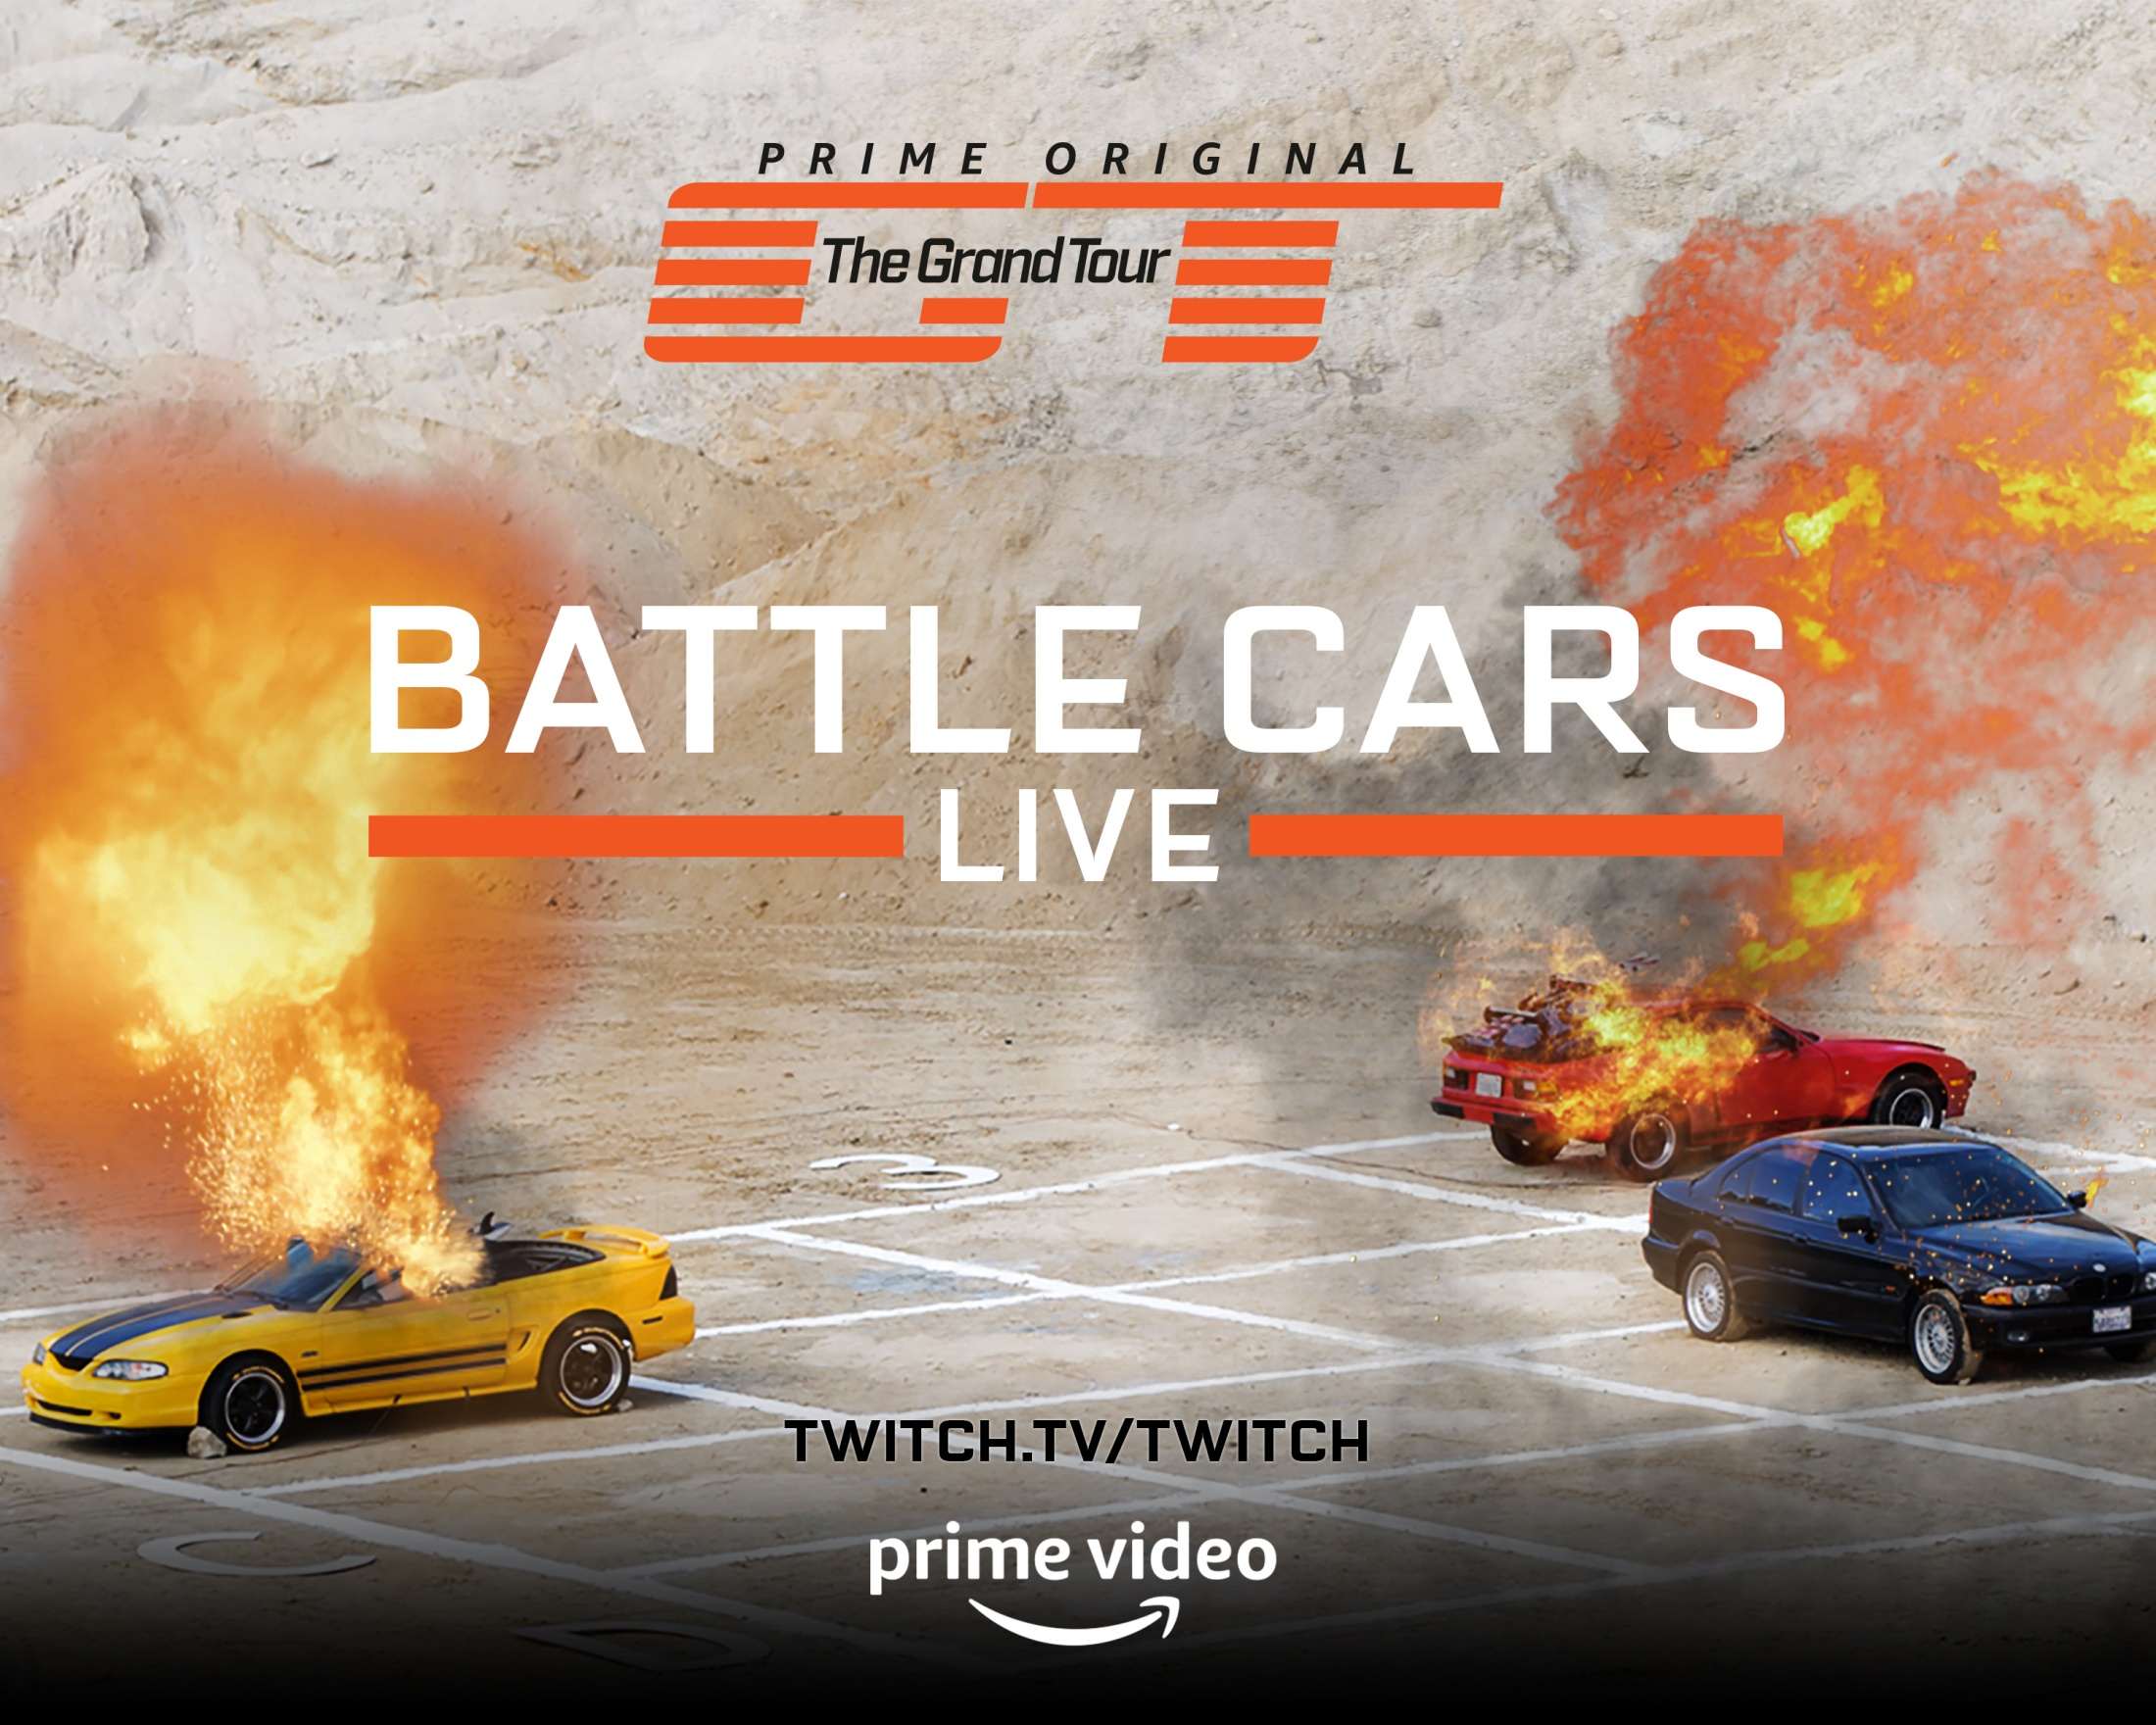 Image Media for The Grand Tour Season 2: Battle Cars Live